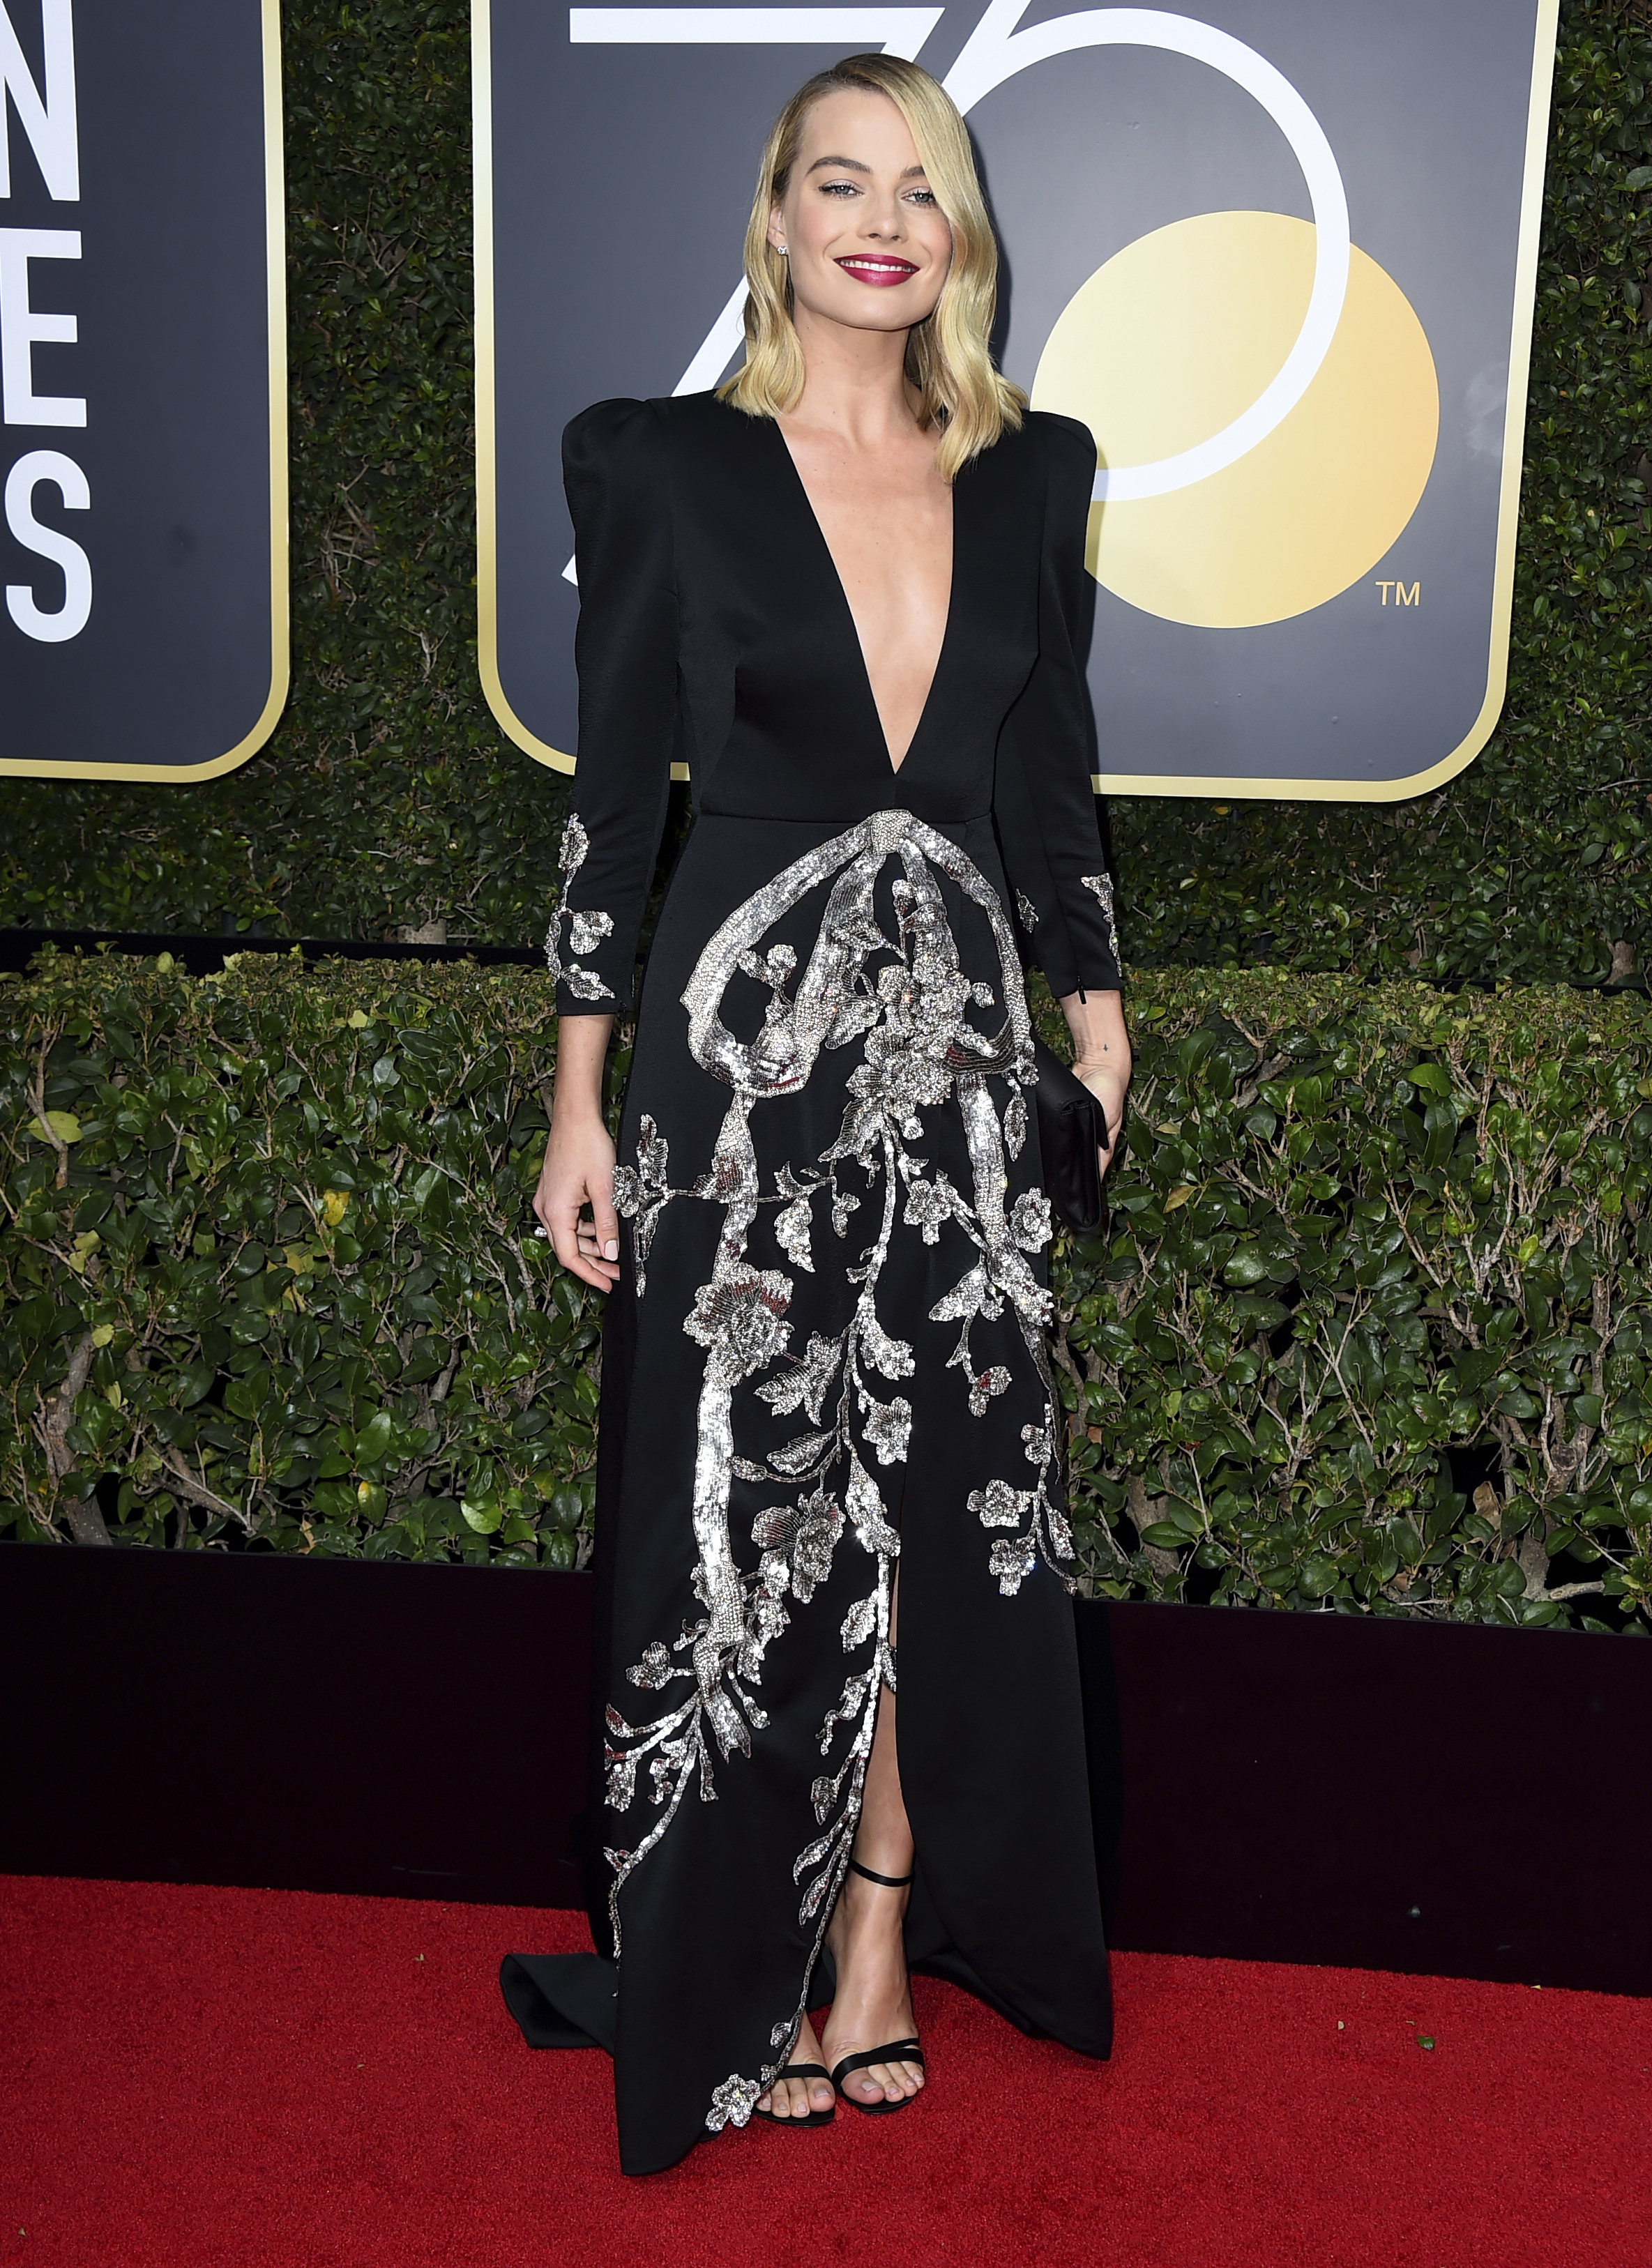 <div class='meta'><div class='origin-logo' data-origin='AP'></div><span class='caption-text' data-credit='Jordan Strauss/Invision/AP'>Margot Robbie arrives at the 75th annual Golden Globe Awards at the Beverly Hilton Hotel on Sunday, Jan. 7, 2018, in Beverly Hills, Calif.</span></div>